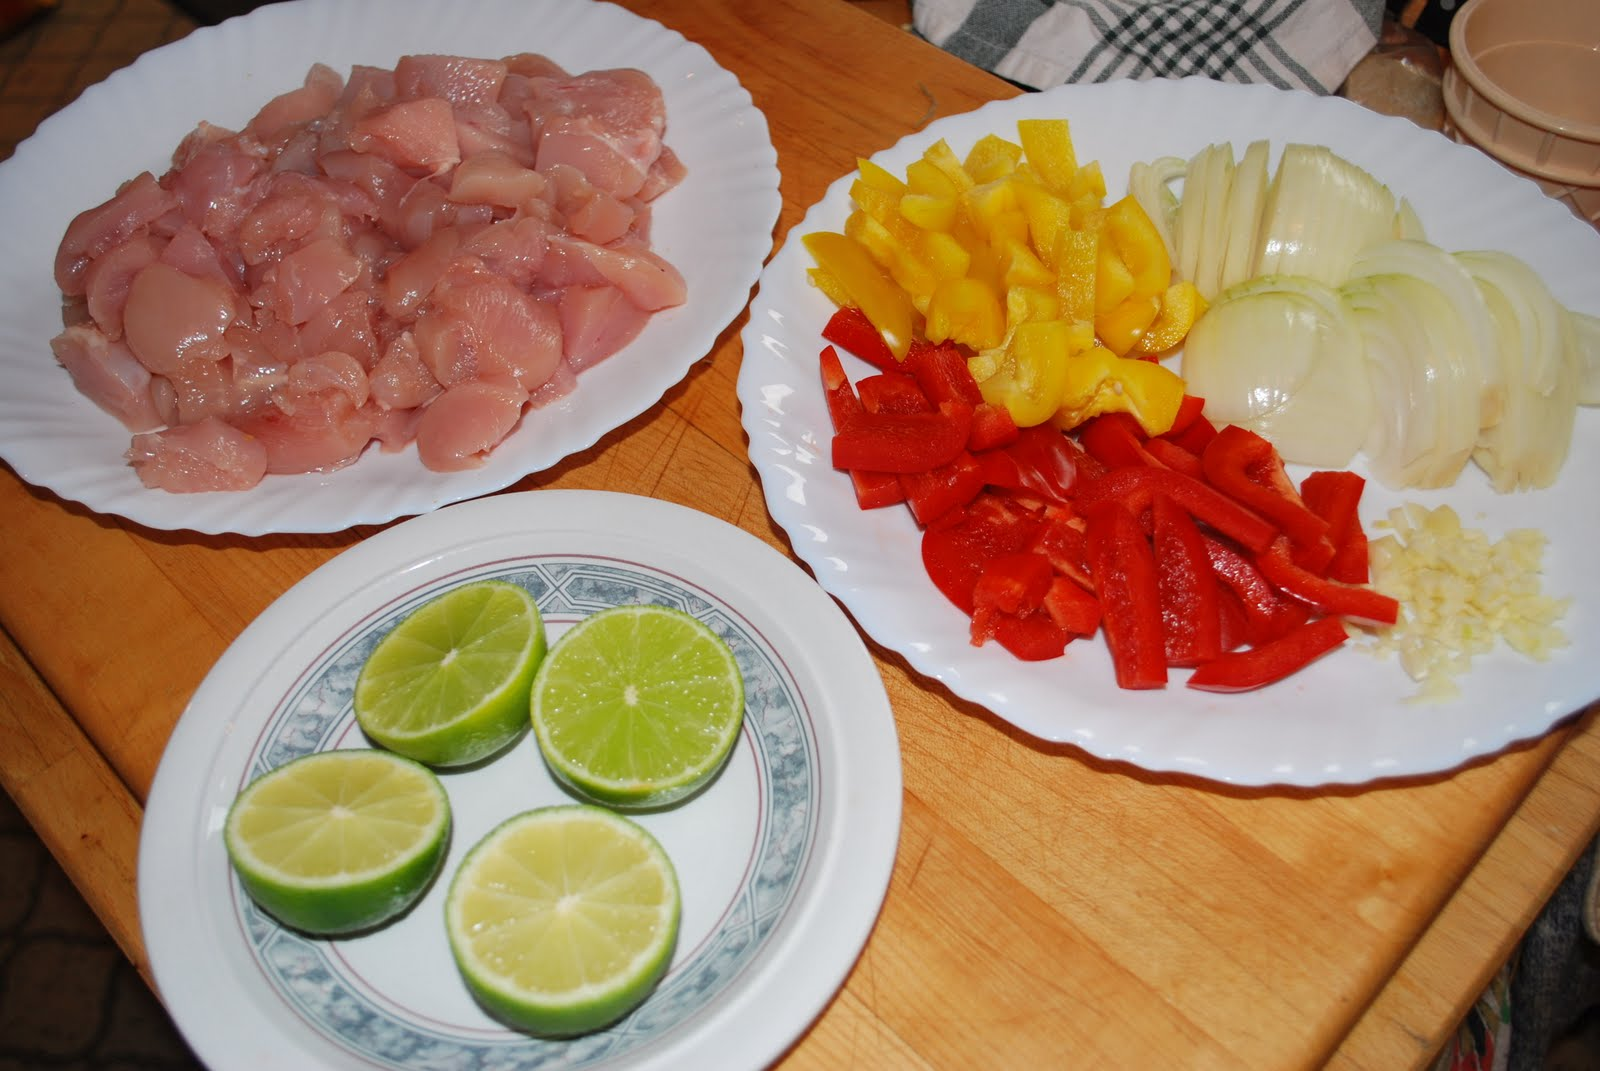 fajitas ingredients